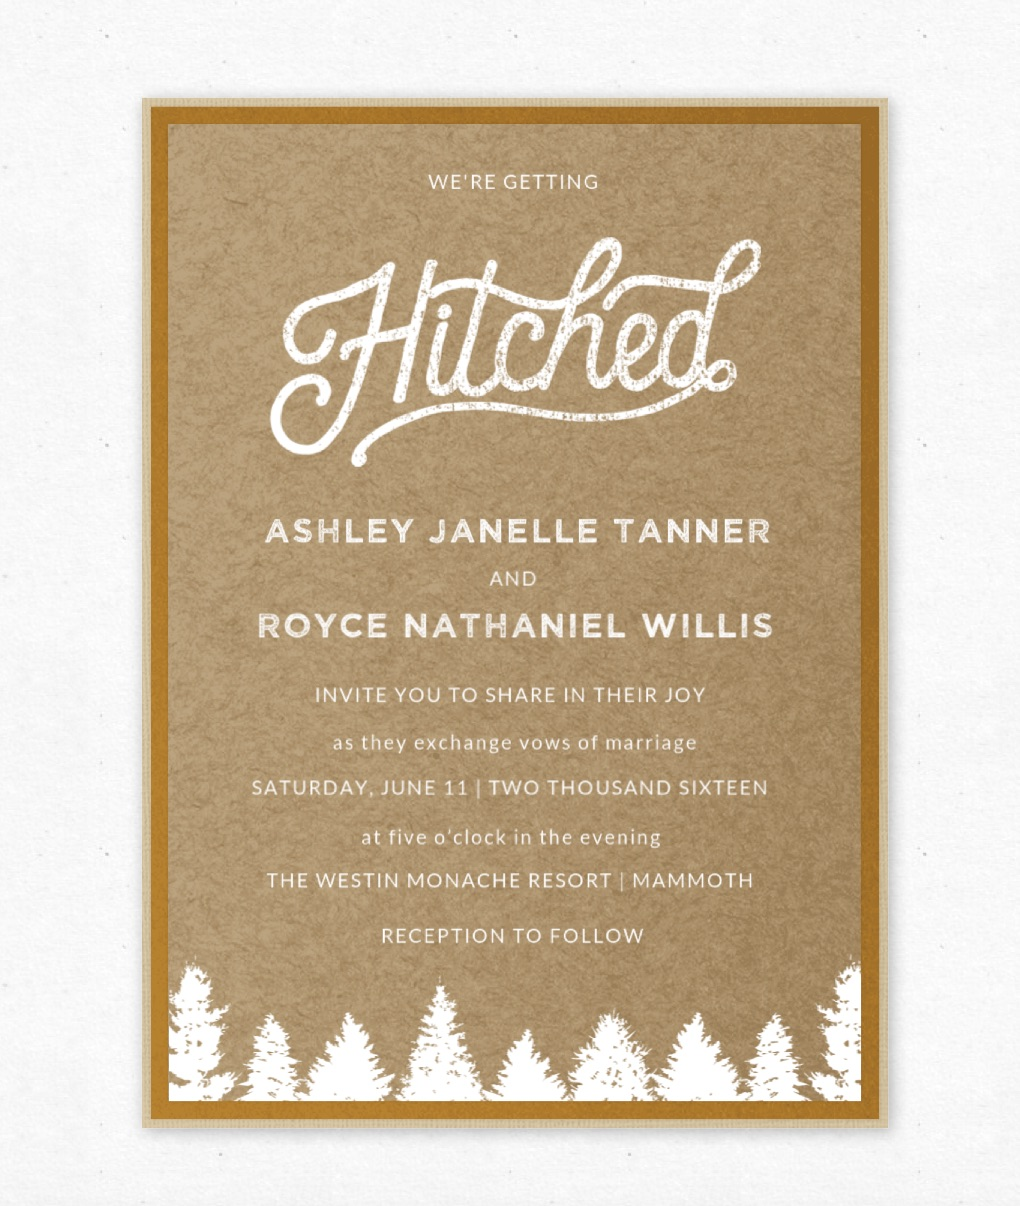 LAYERED BACKING HITCHED copy.jpg